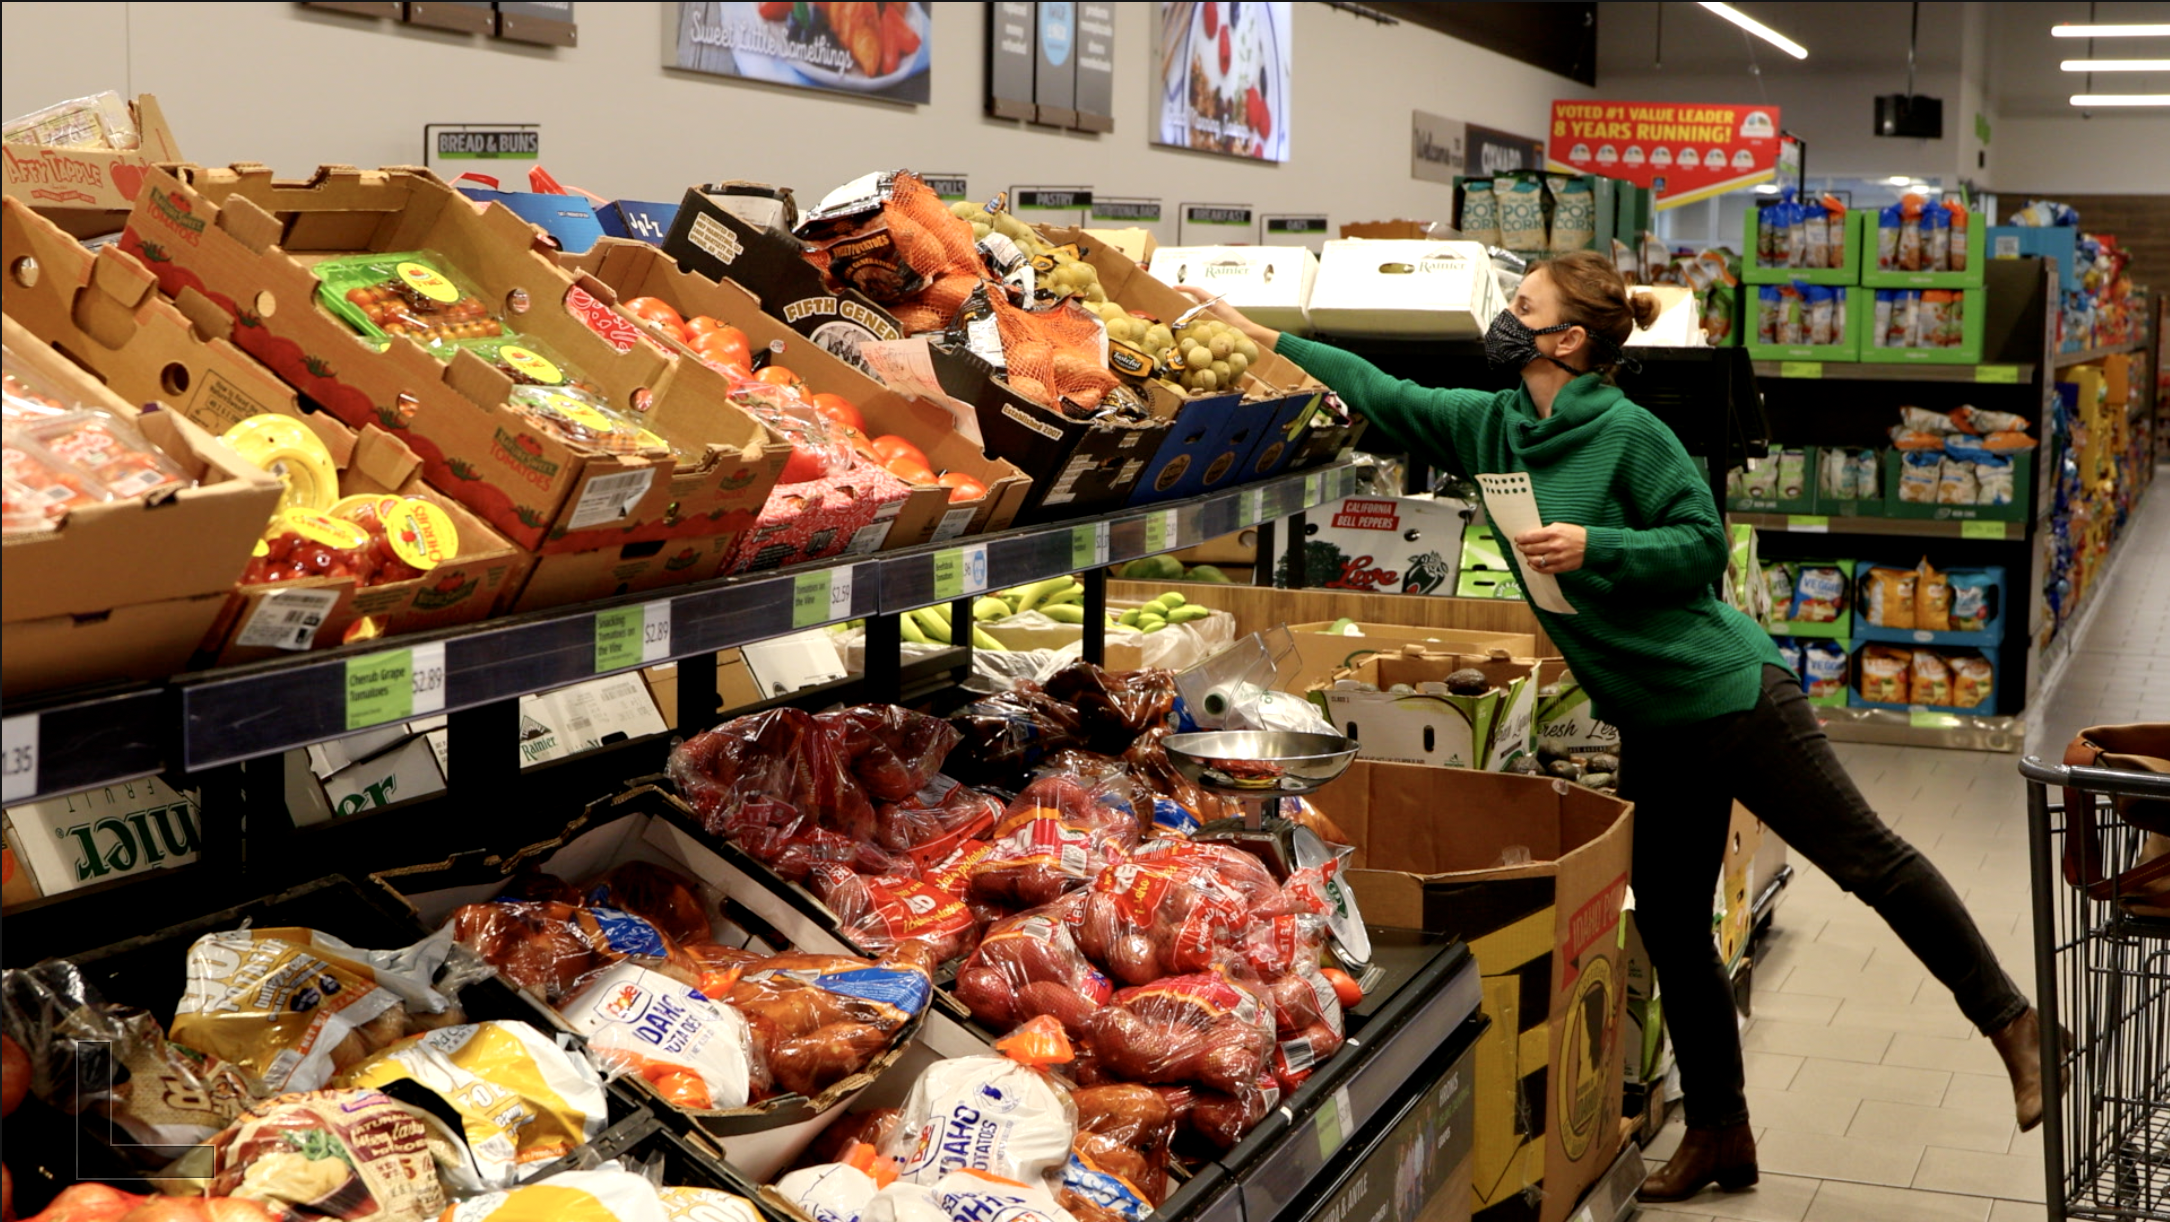 A woman shopping at a grocery store in the produce section, reaching to get something from a high shelf with boxes of potatoes in front of her.